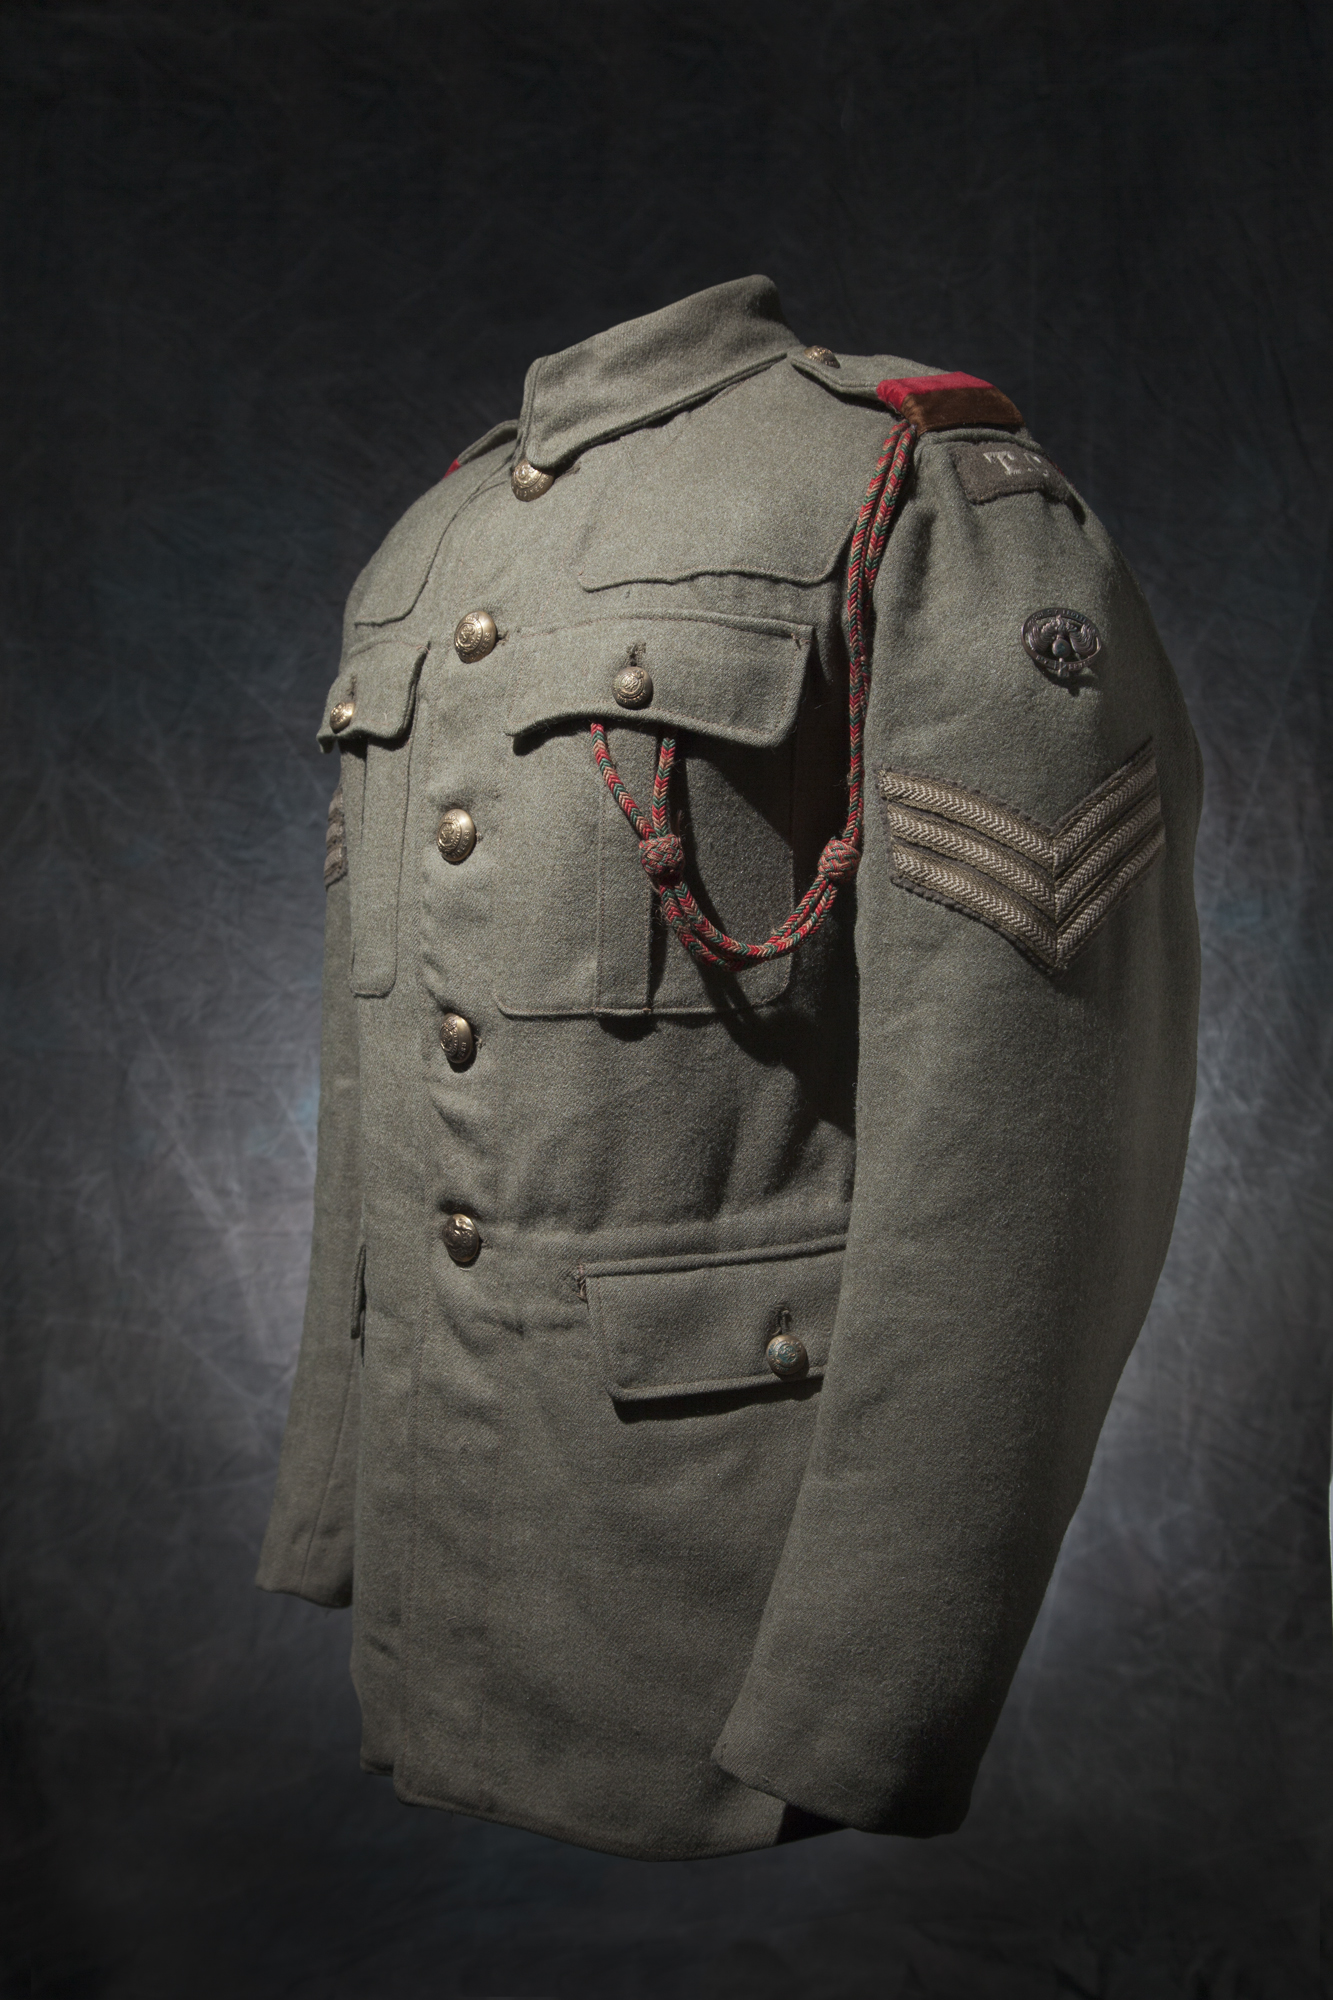 Walter Radcliffe's tunic